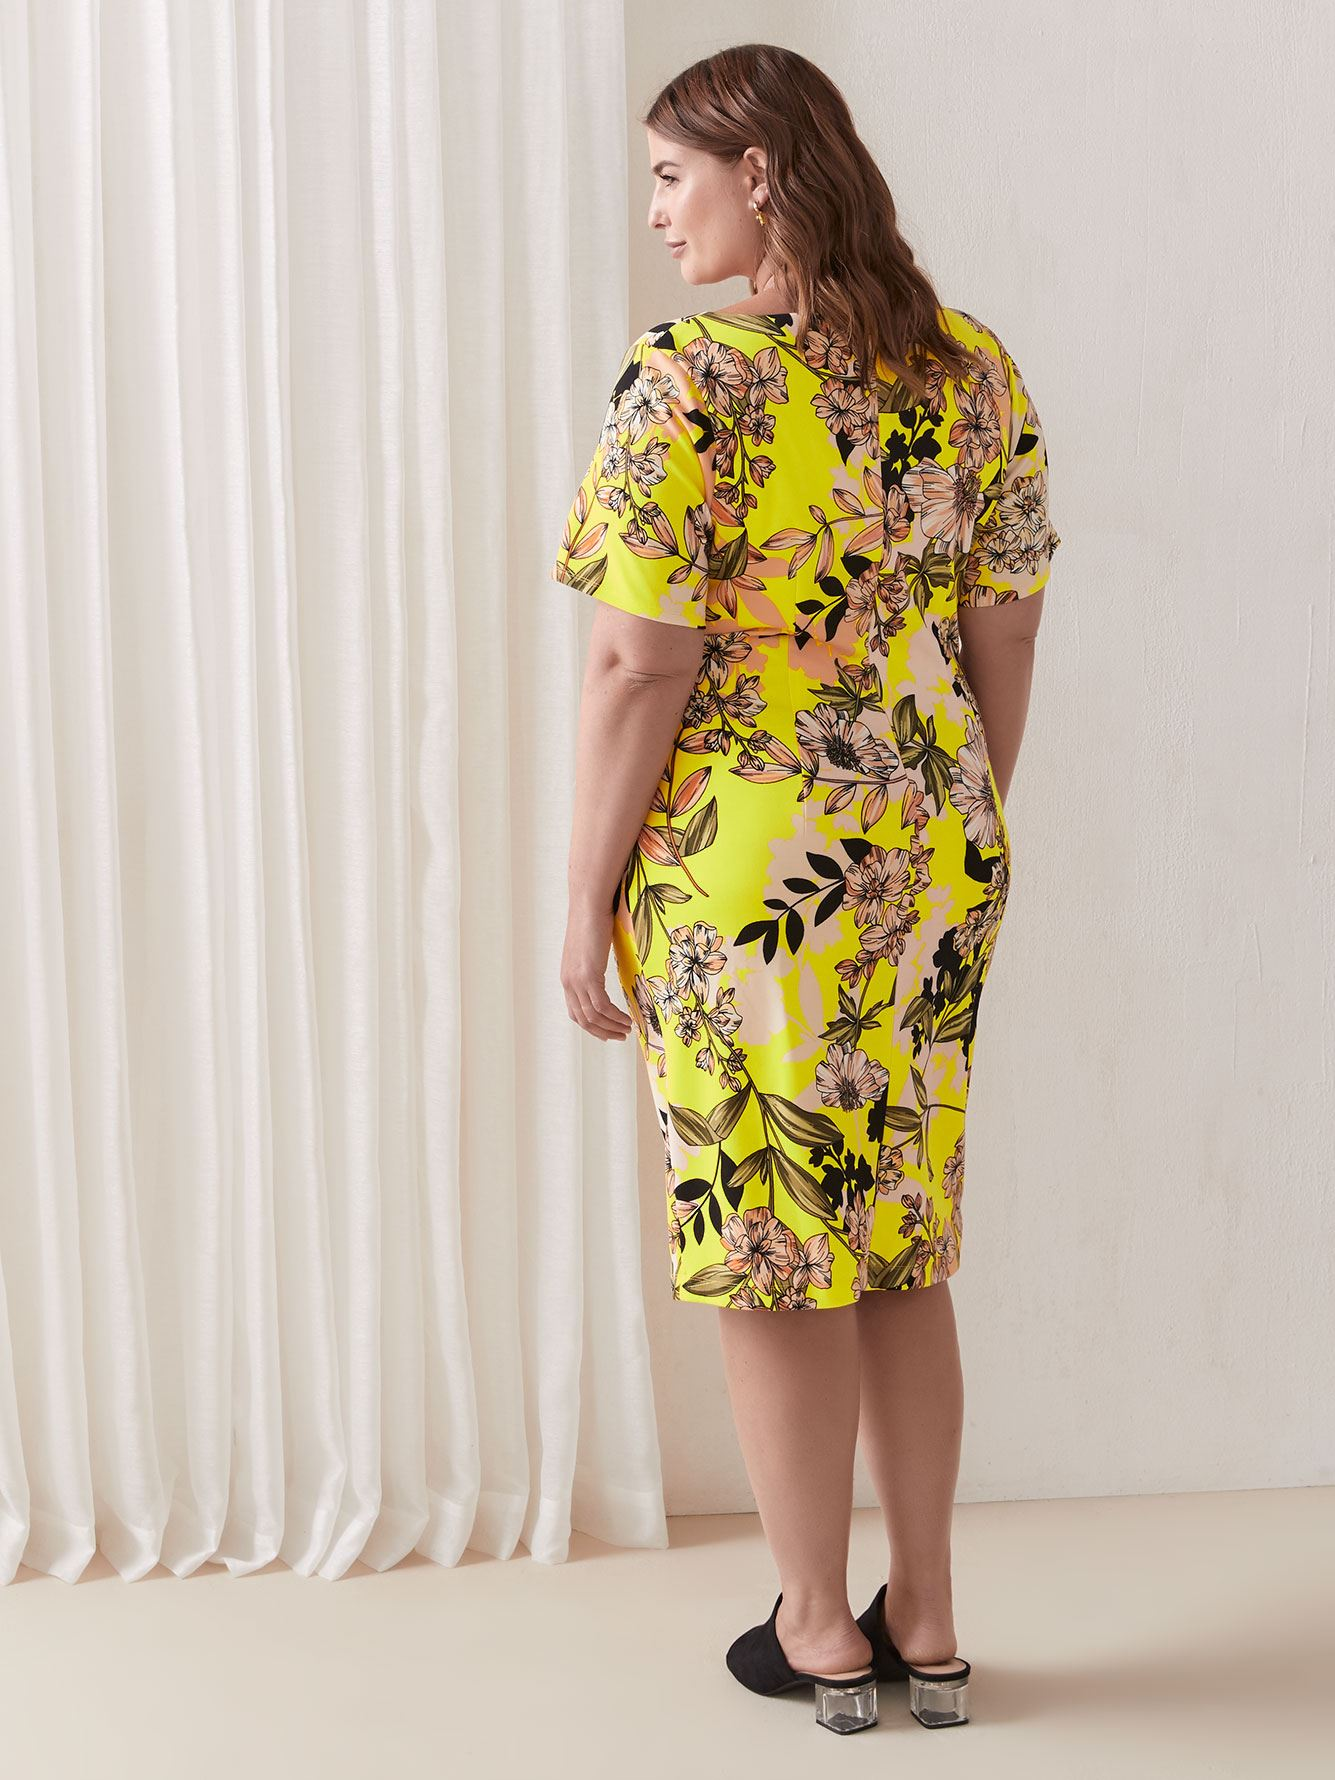 Cap Sleeve Floral Bodycon Dress - Christian Siriano